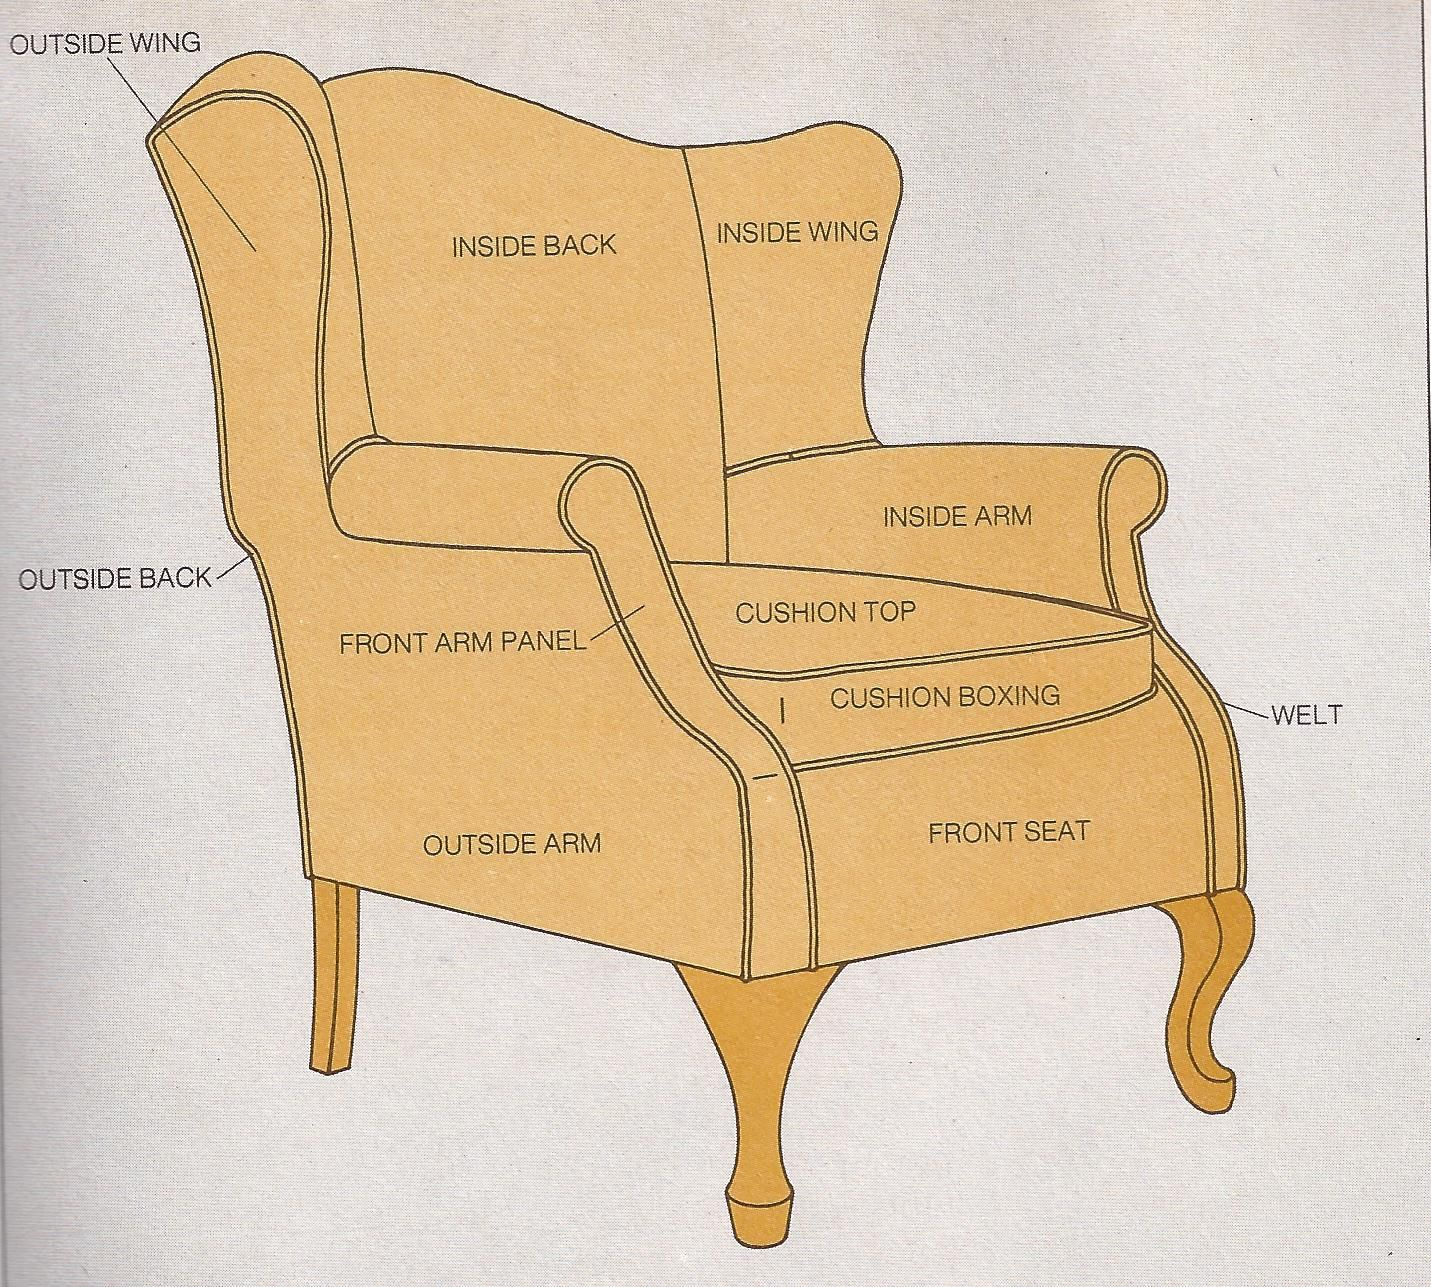 How To Reupholster Sofa Arms Score Deutsch Upholster The Front Arm Of A Cabinets Matttroy